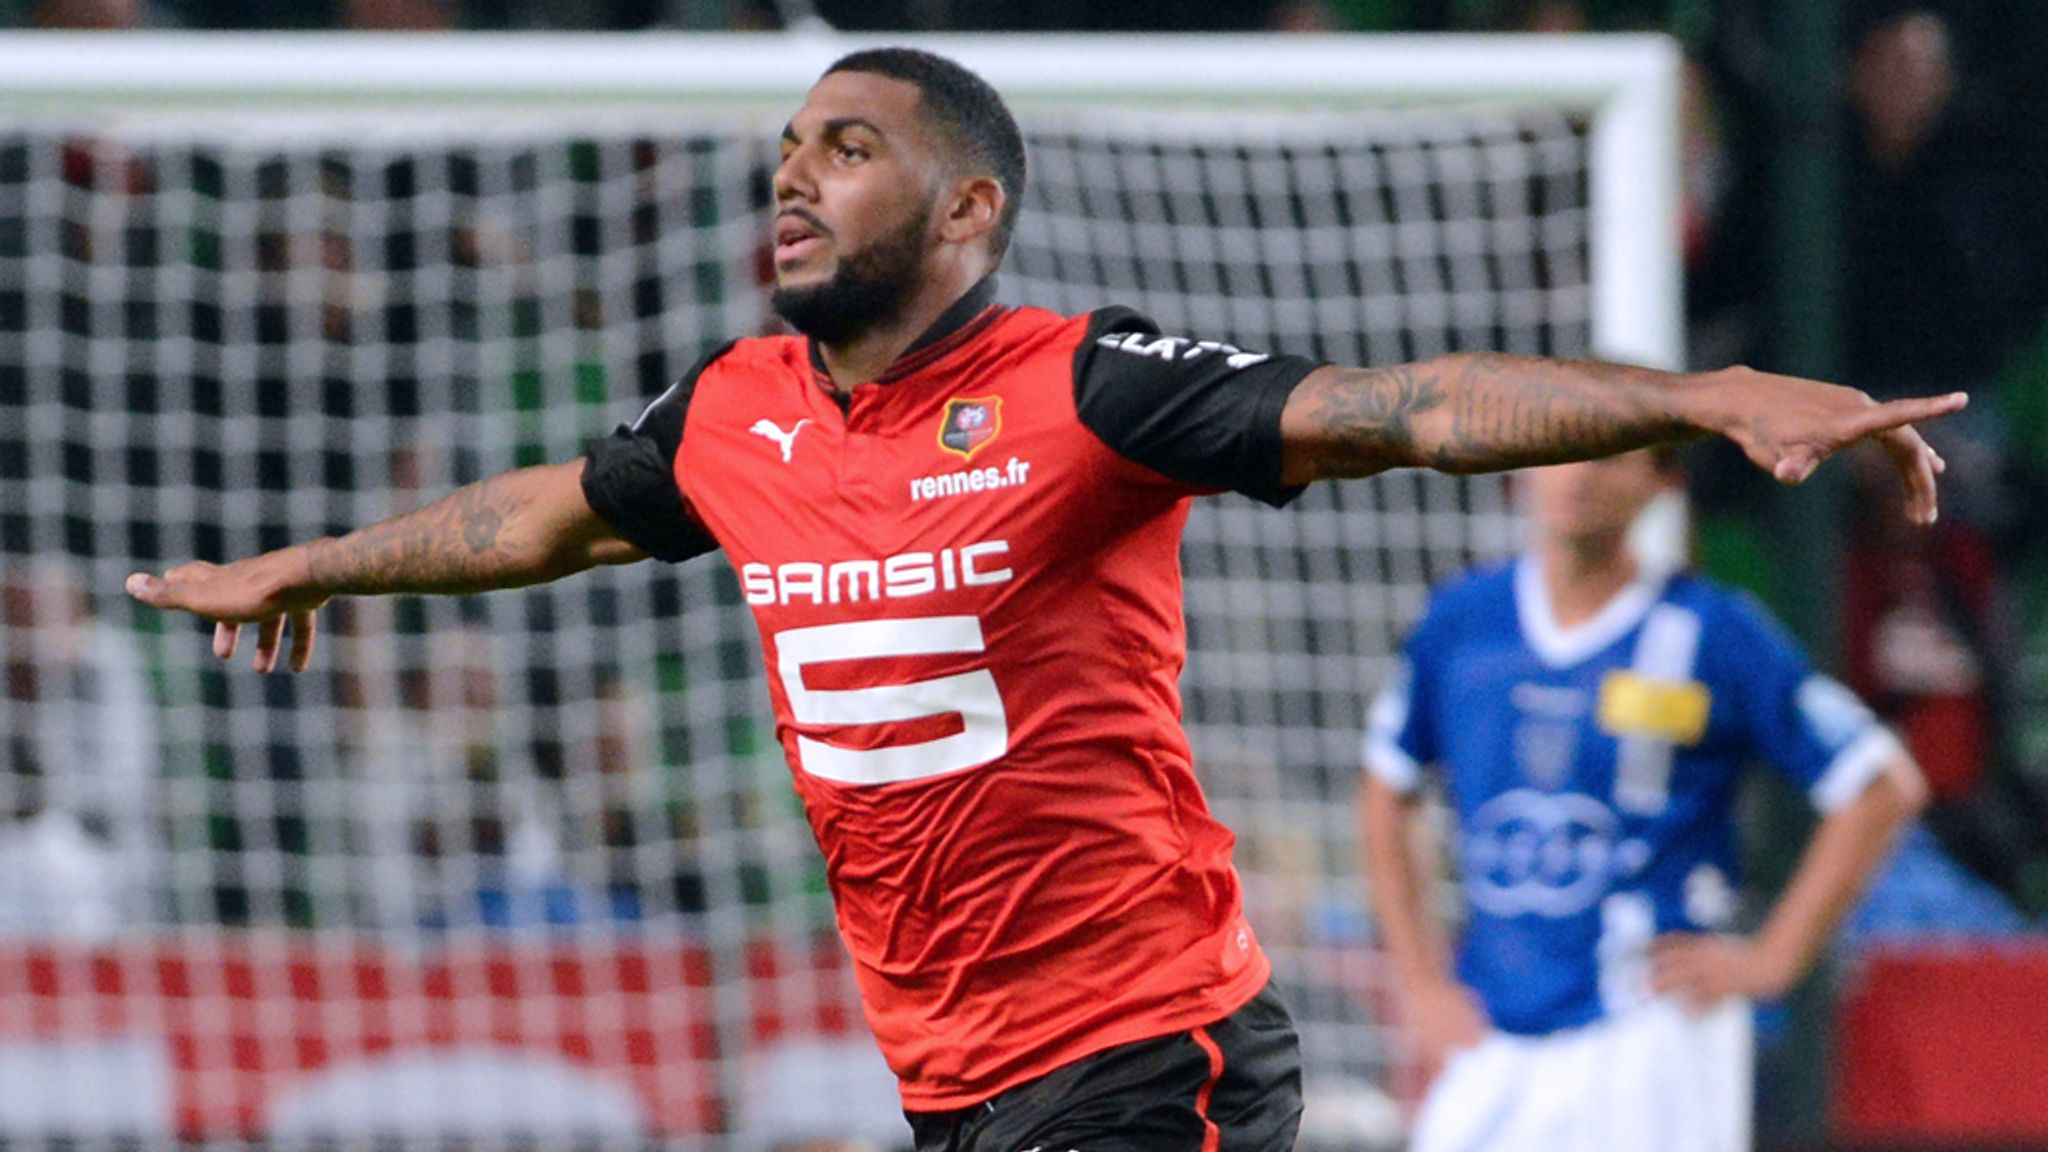 A new offer for Yann M'Vila has come from England, Rennes have confirmed | Football News | Sky Sports